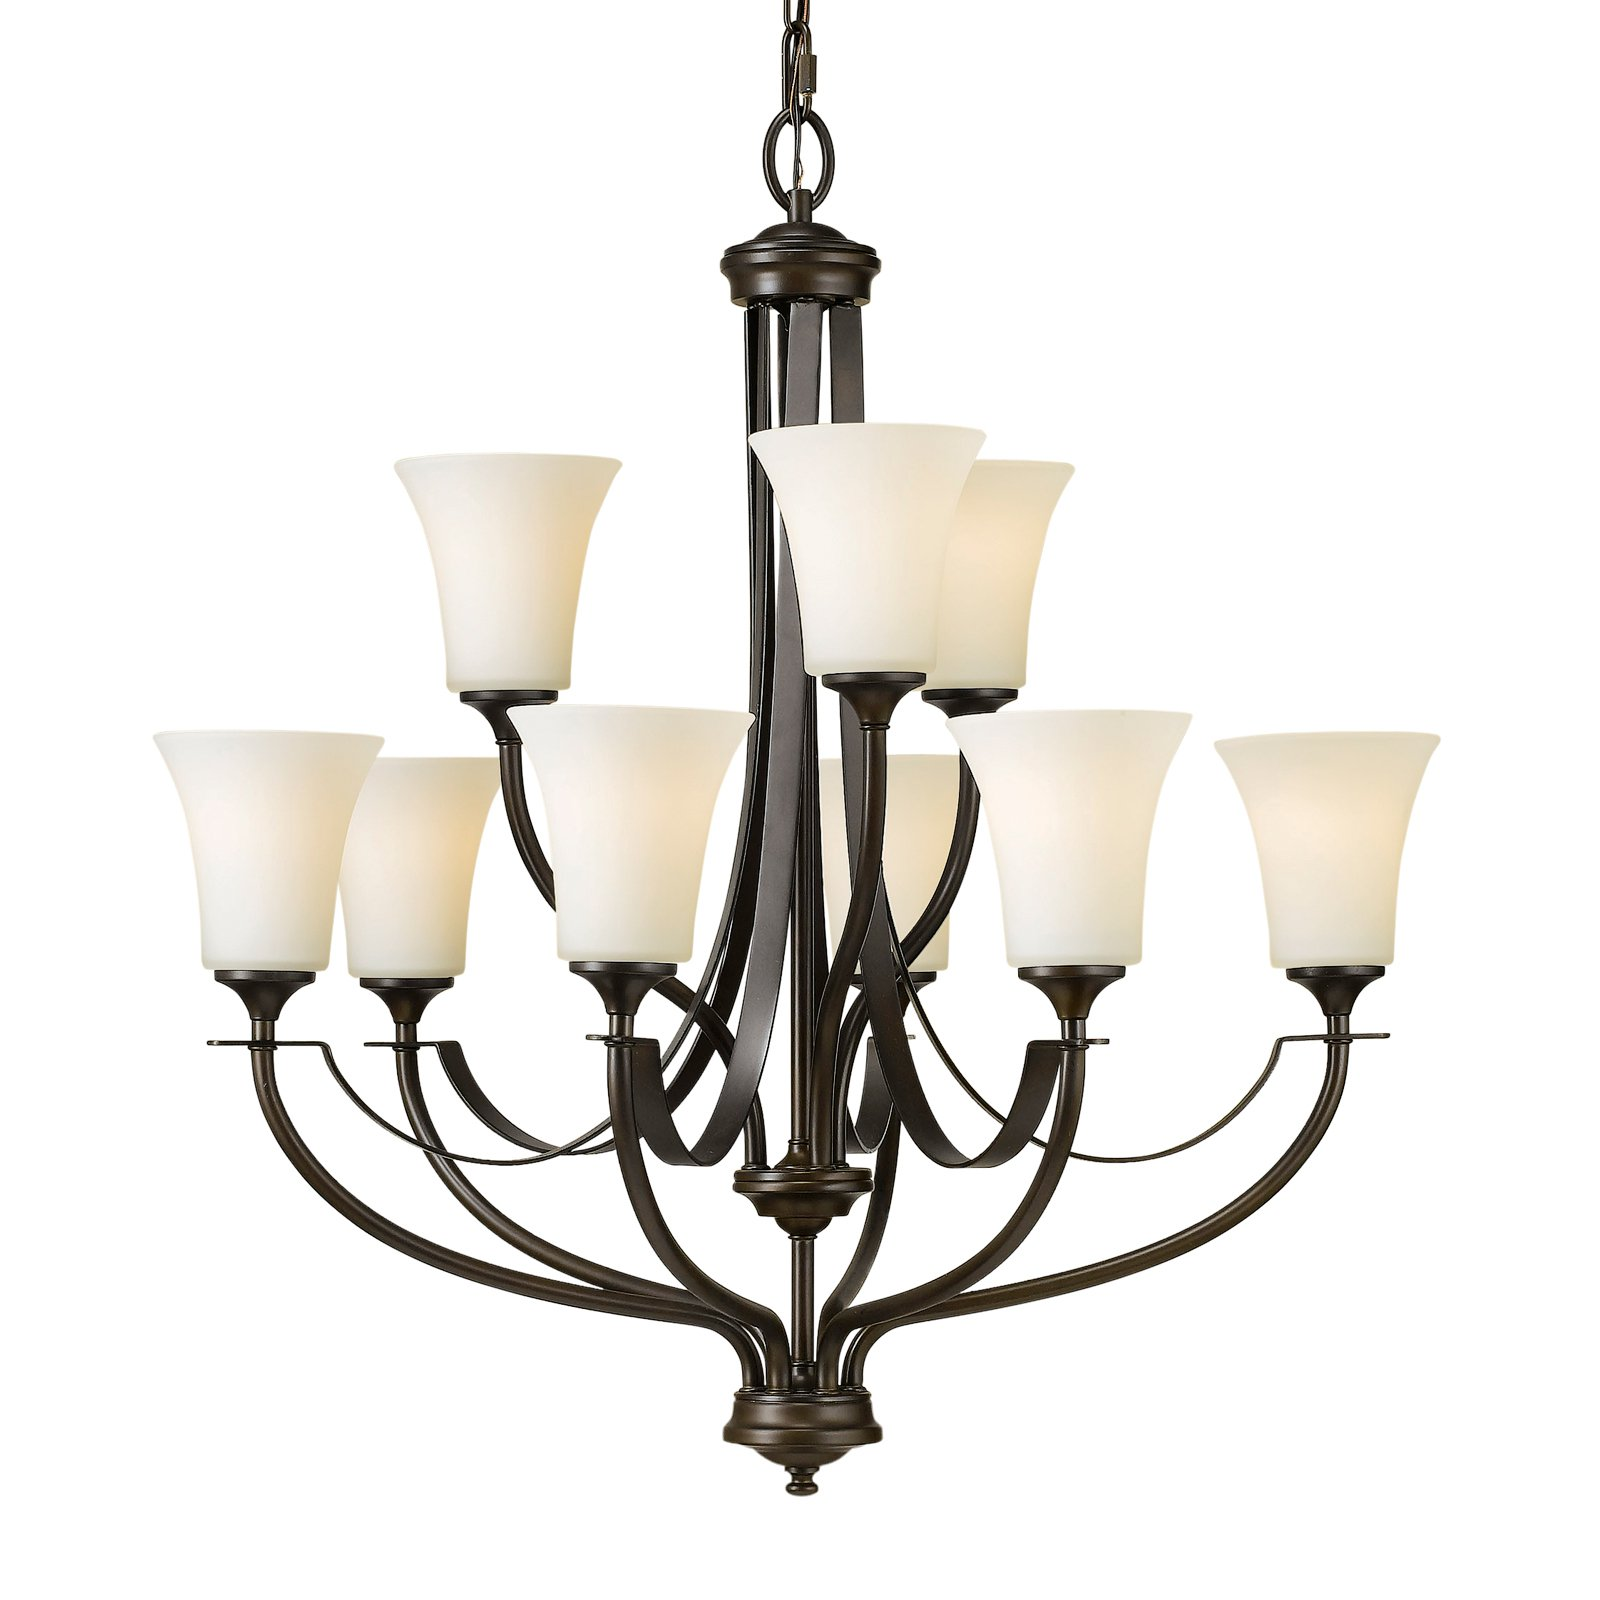 Feiss Barrington Chandelier 29W in. Oil Rubbed Bronze by Murray Feiss